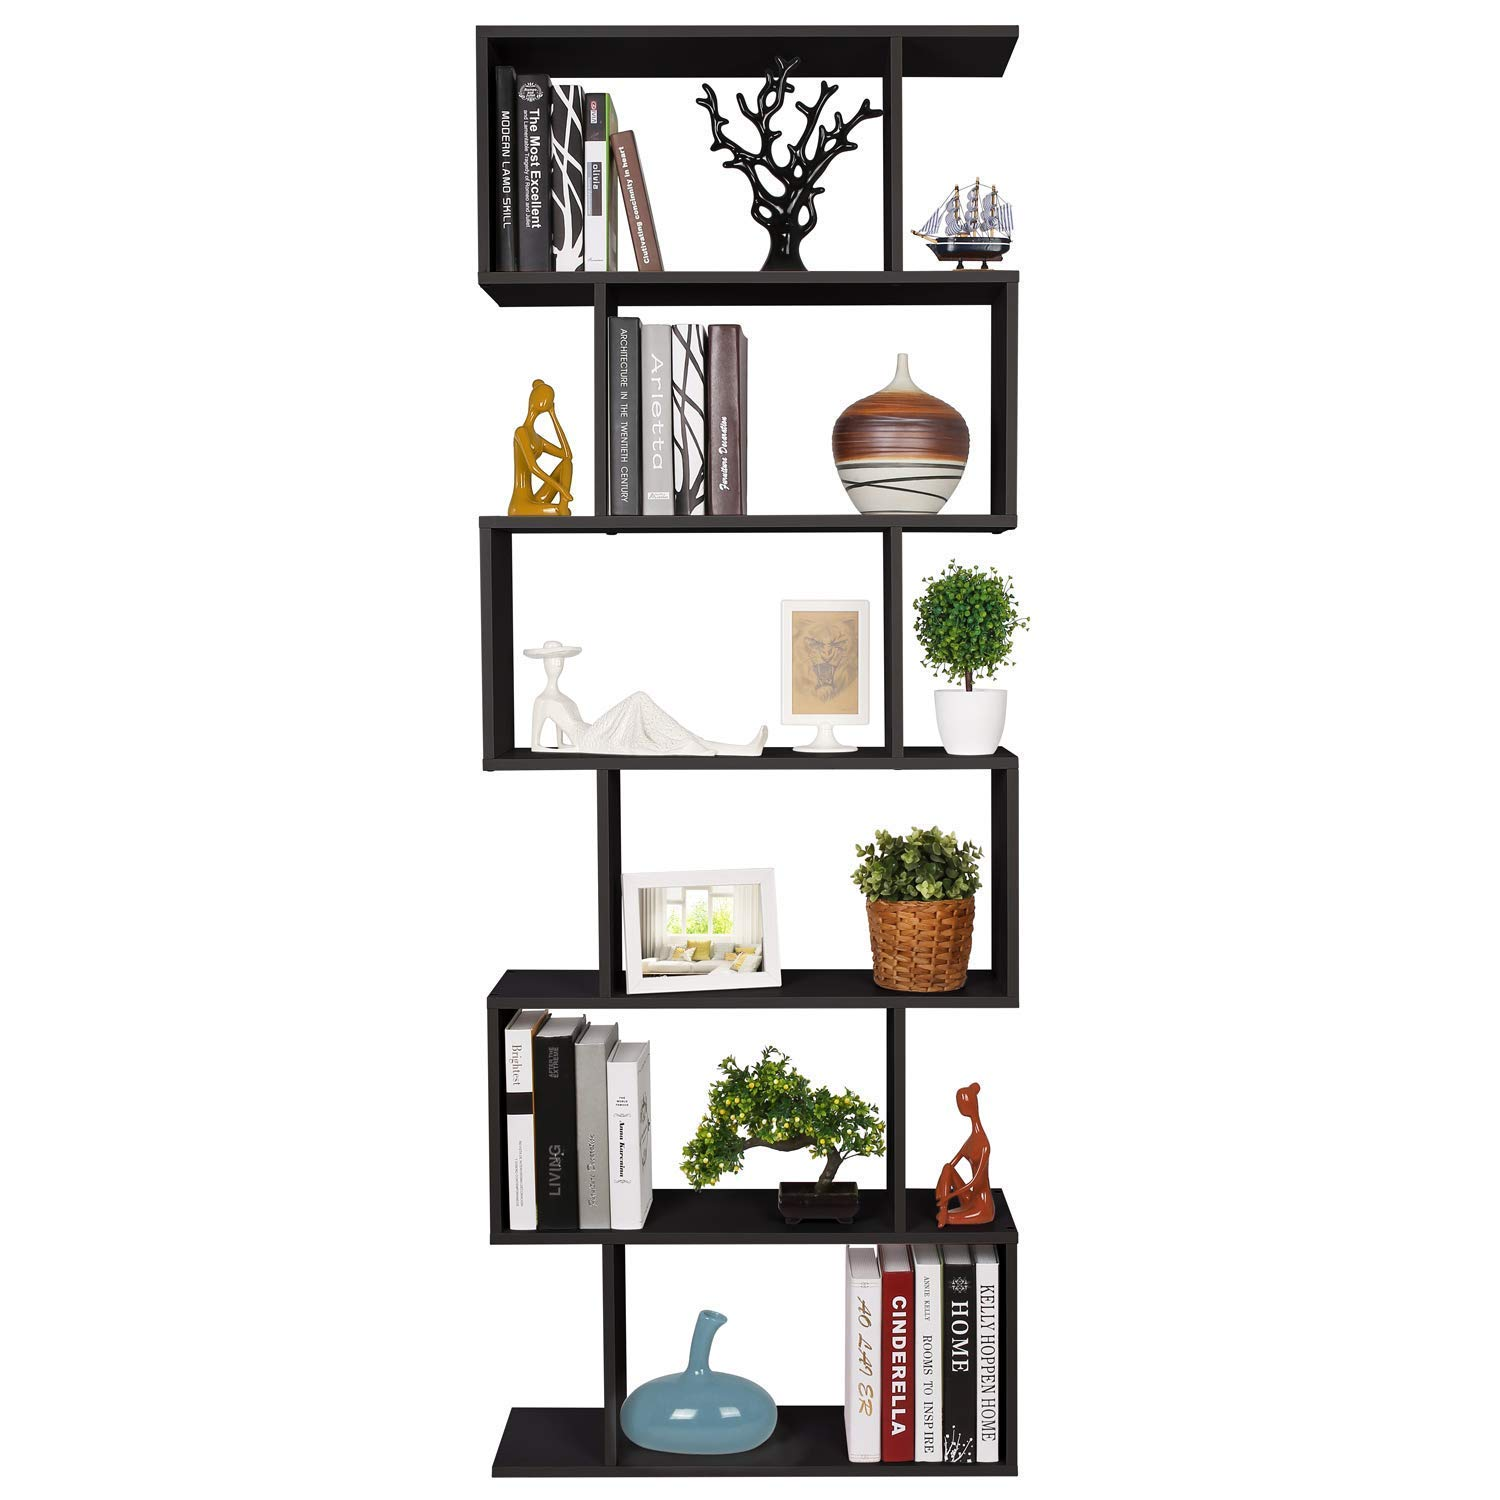 Homfa Bookshelf 6-Tier Bookcase S Shaped Free Standing Display Storage Shelves Decor Furniture for Living Room Home Office, Black by Homfa